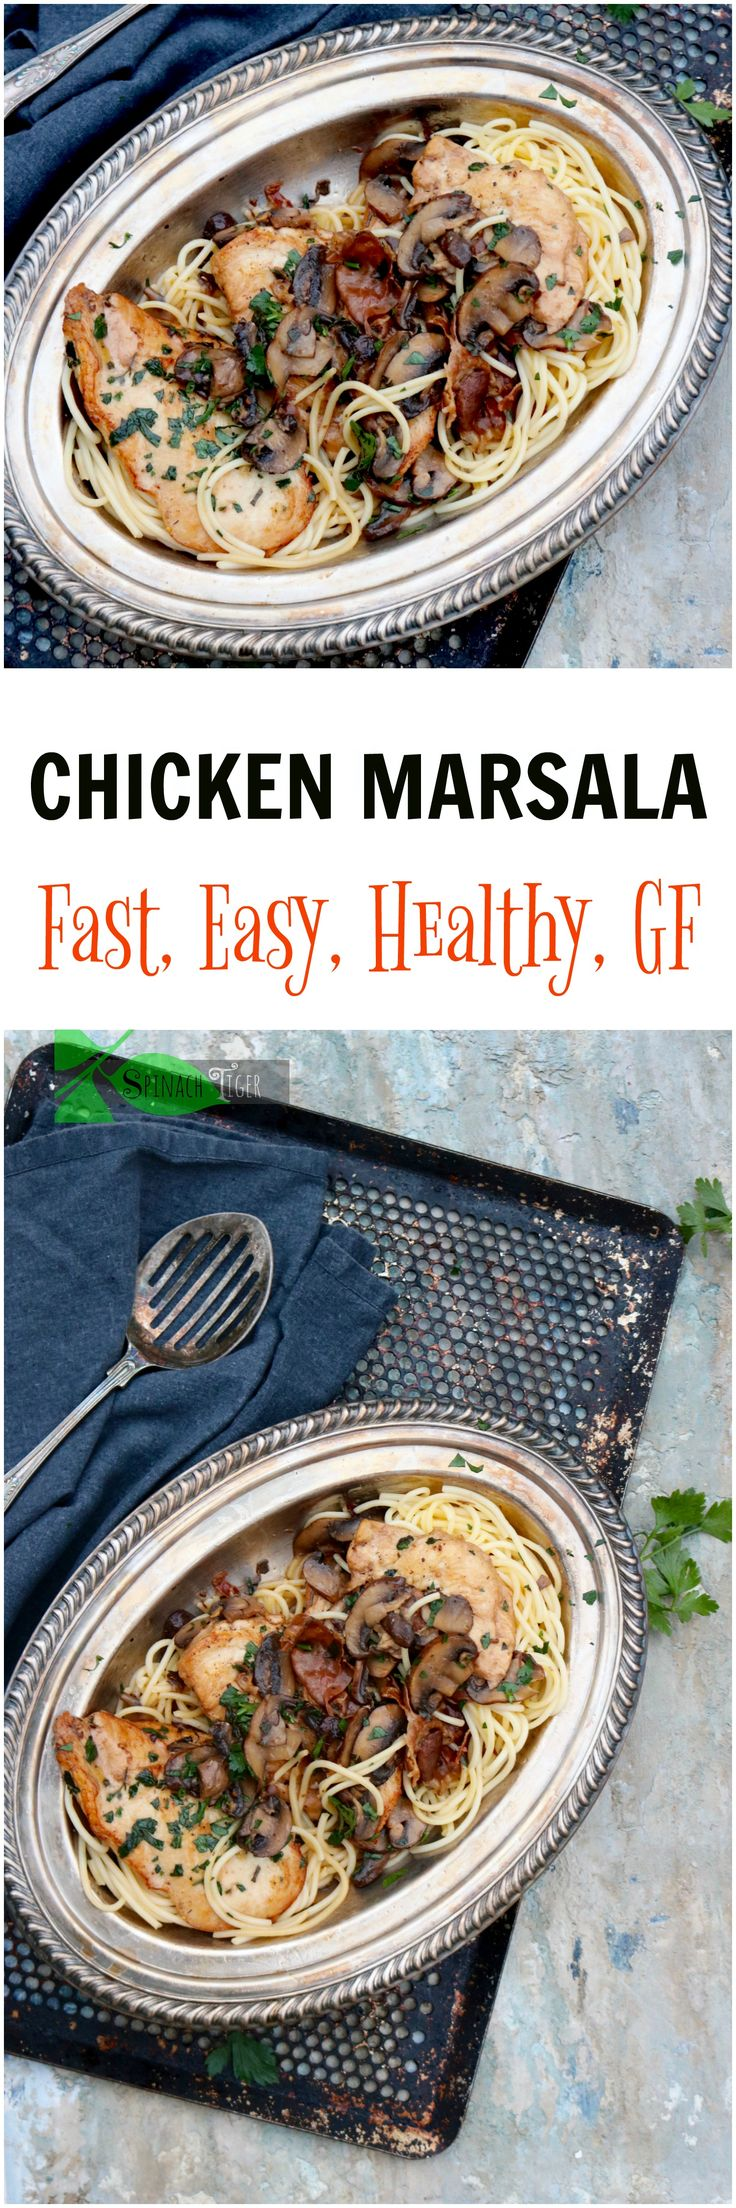 317 best man food images on pinterest cooking food drinks and drink easy chicken marsala with mushrooms recipes from spinach tiger forumfinder Choice Image